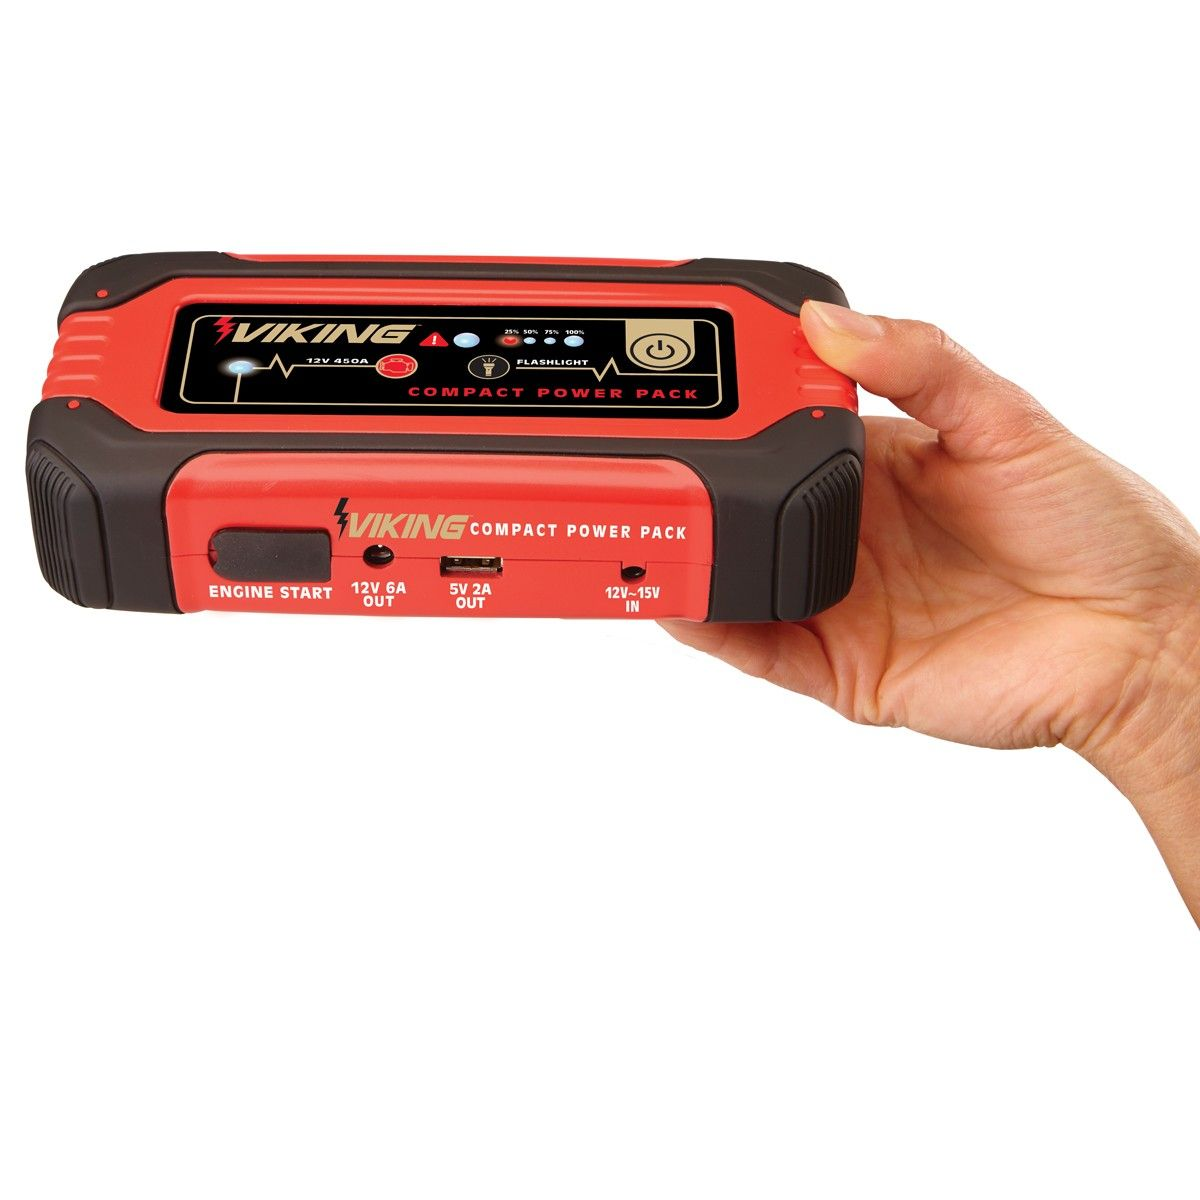 Lithium Ion Jump Starter And Power Pack With Images Power Pack